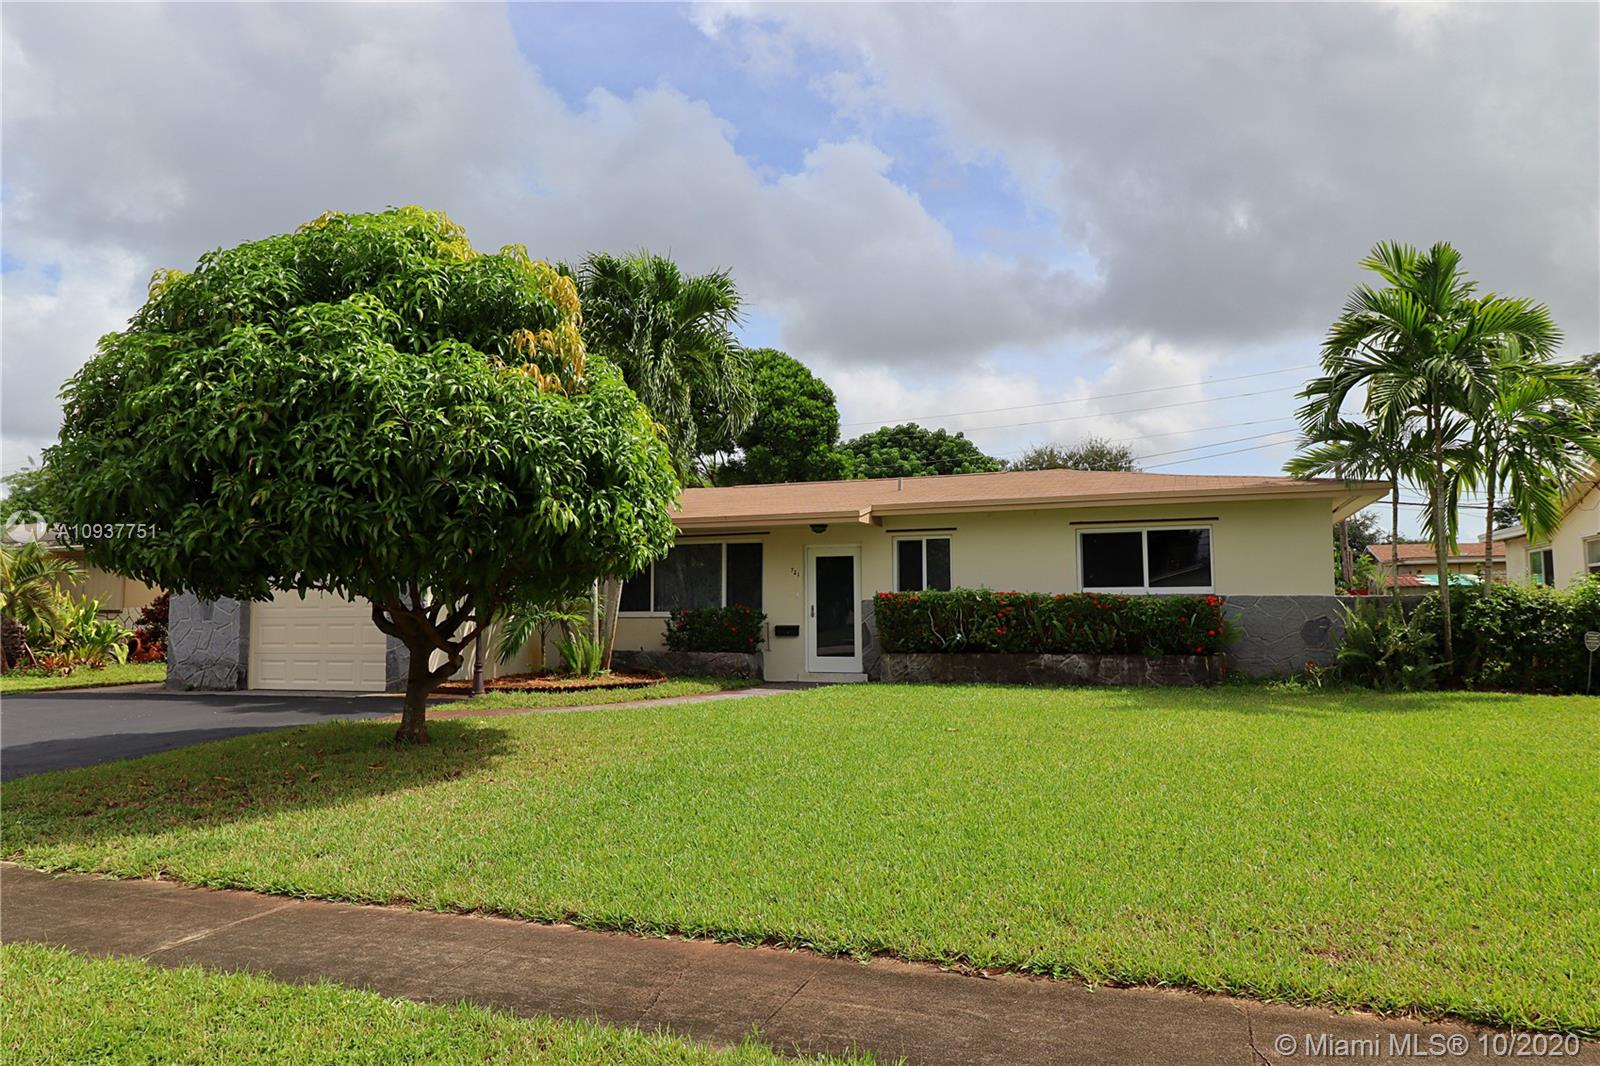 Boulevard Heights - 721 NW 78th Ave, Pembroke Pines, FL 33024